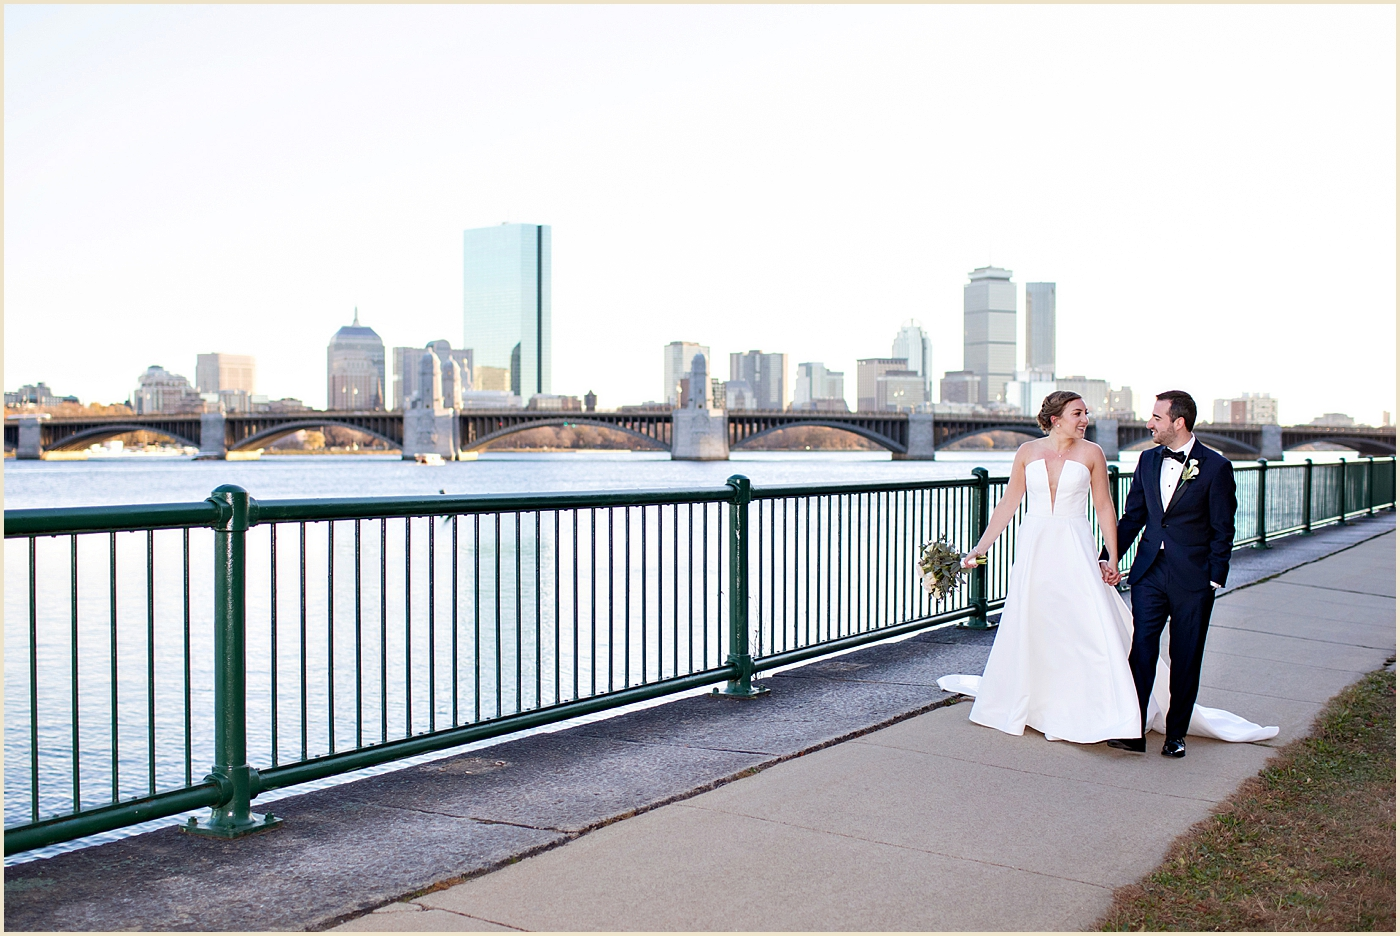 Charles River Wedding Royal Sonesta Cambridge